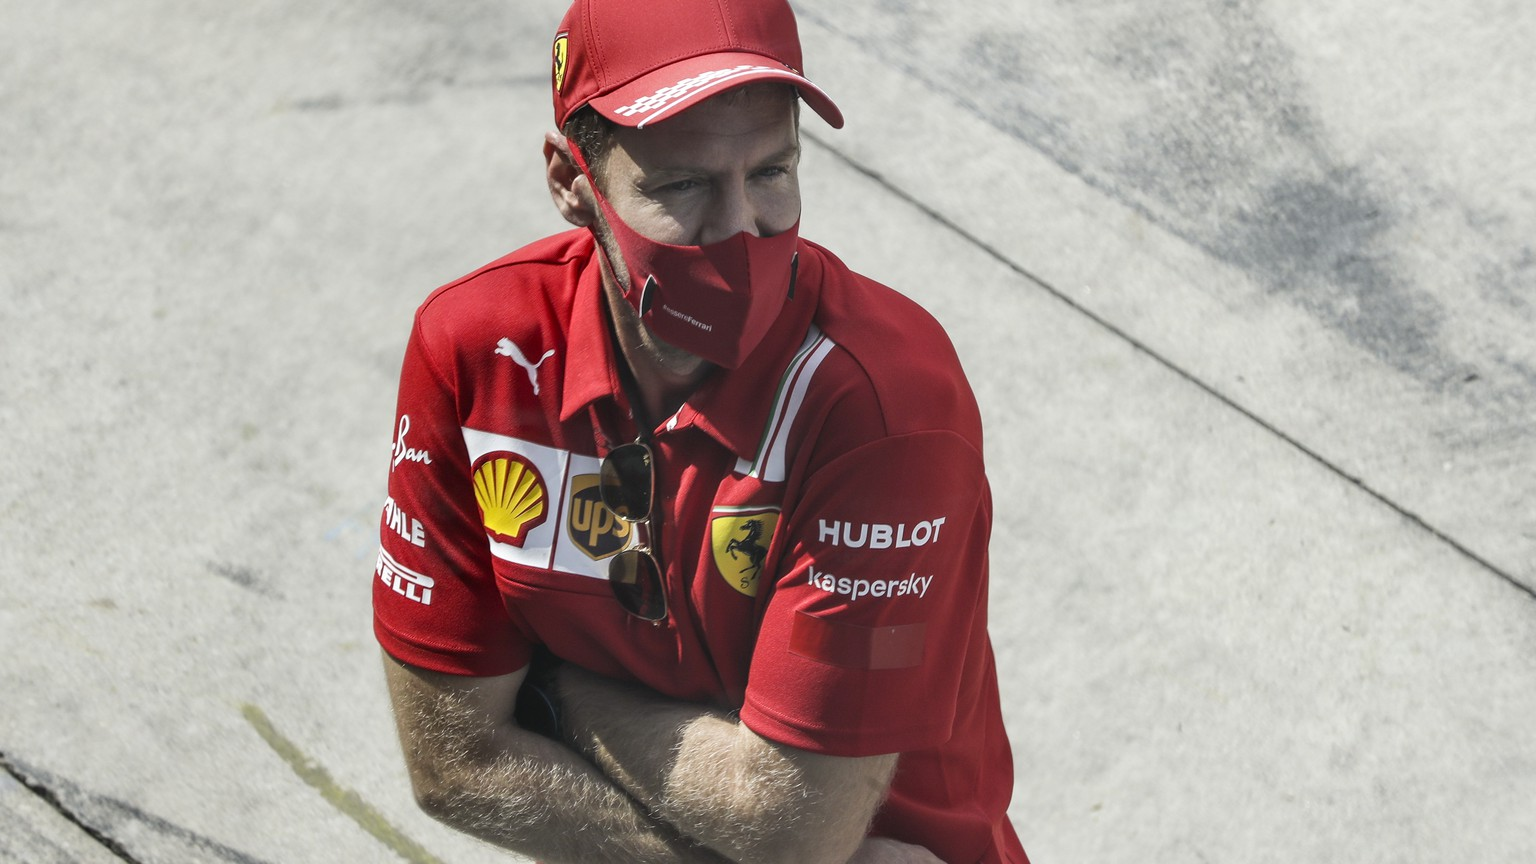 epa08650372 German Formula One driver Sebastian Vettel of Scuderia Ferrari walks at pit lane prior to the 2020 Formula One Grand Prix of Italy at the Monza race track, Monza, Italy 06 September 2020.  EPA/Luca Bruno / Pool